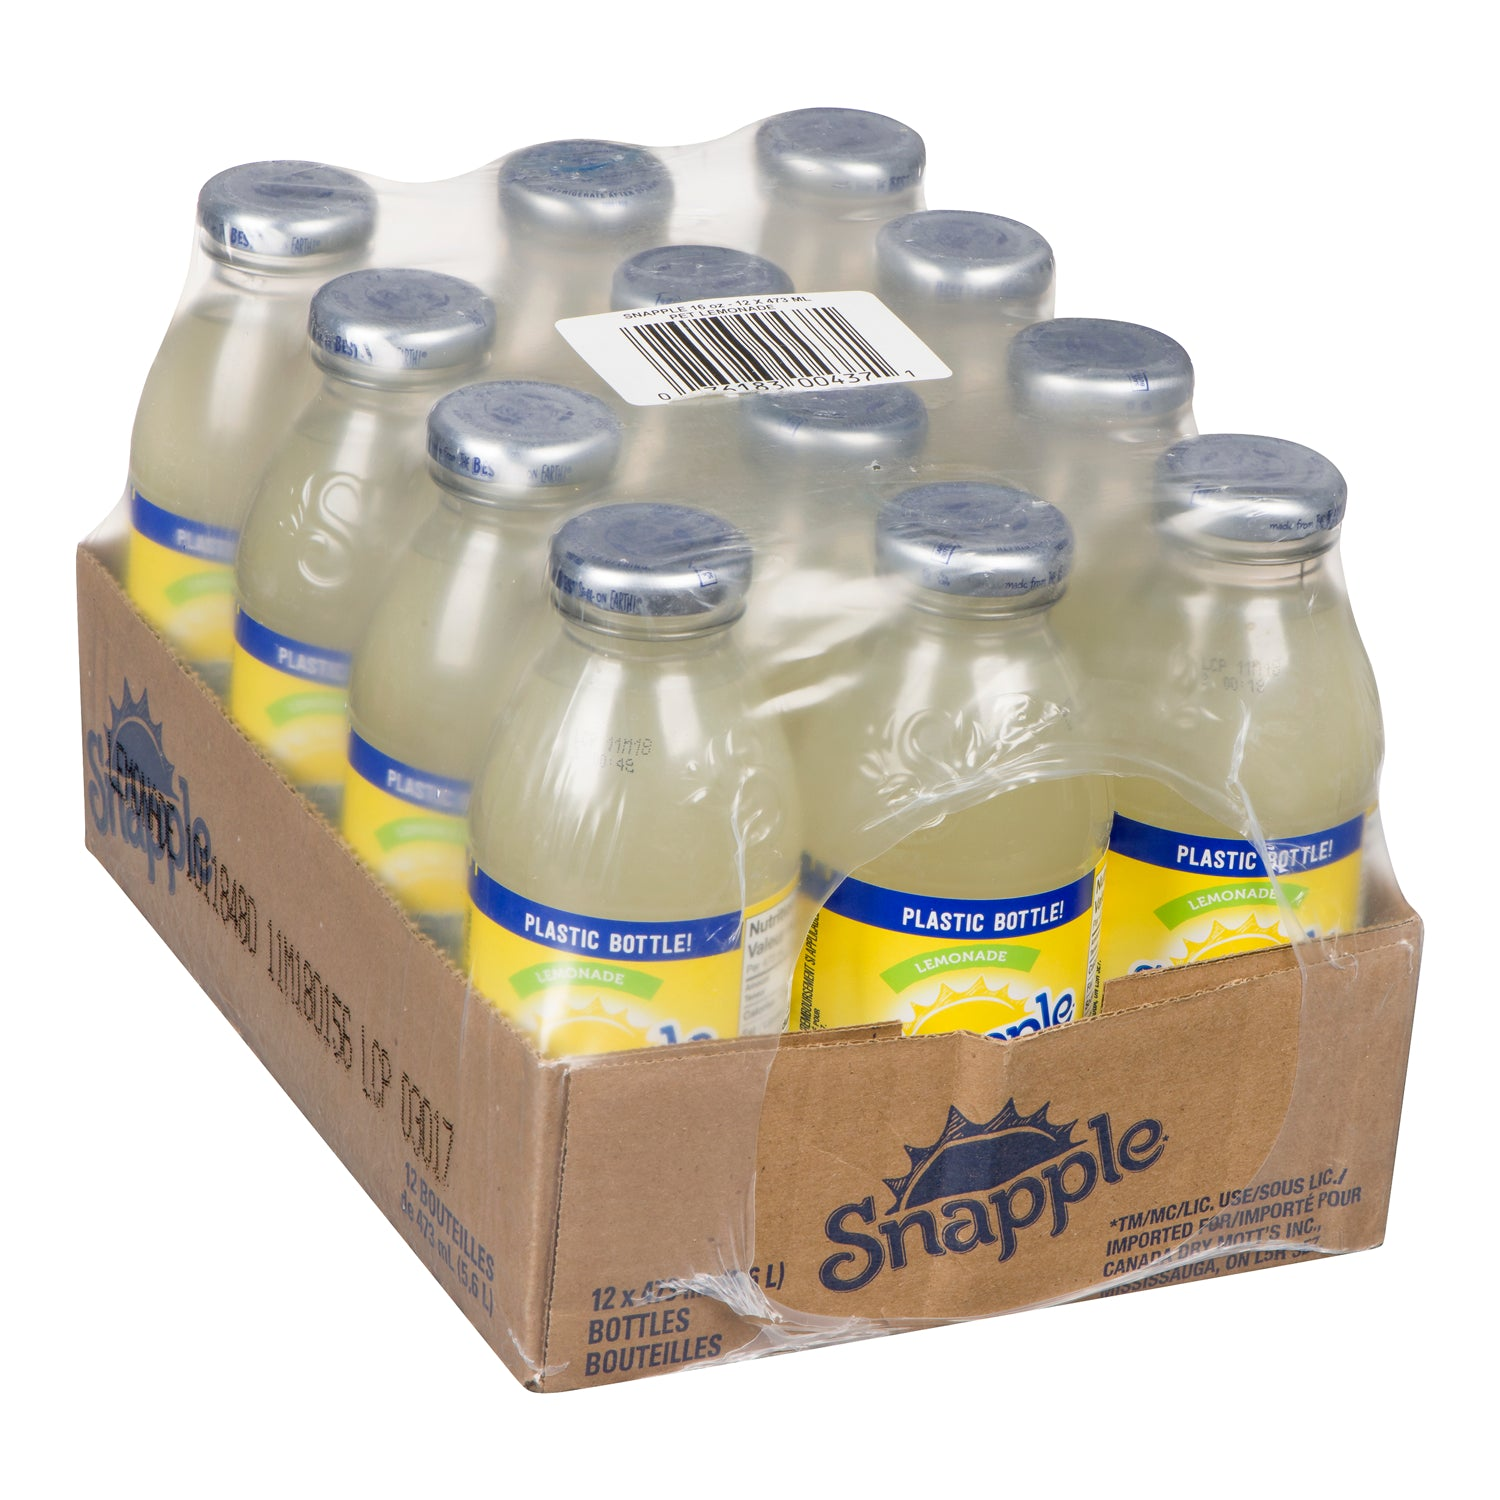 Snapple Lemonade Juice Drink 473 ml - 12 Pack [$1.33/bottle]